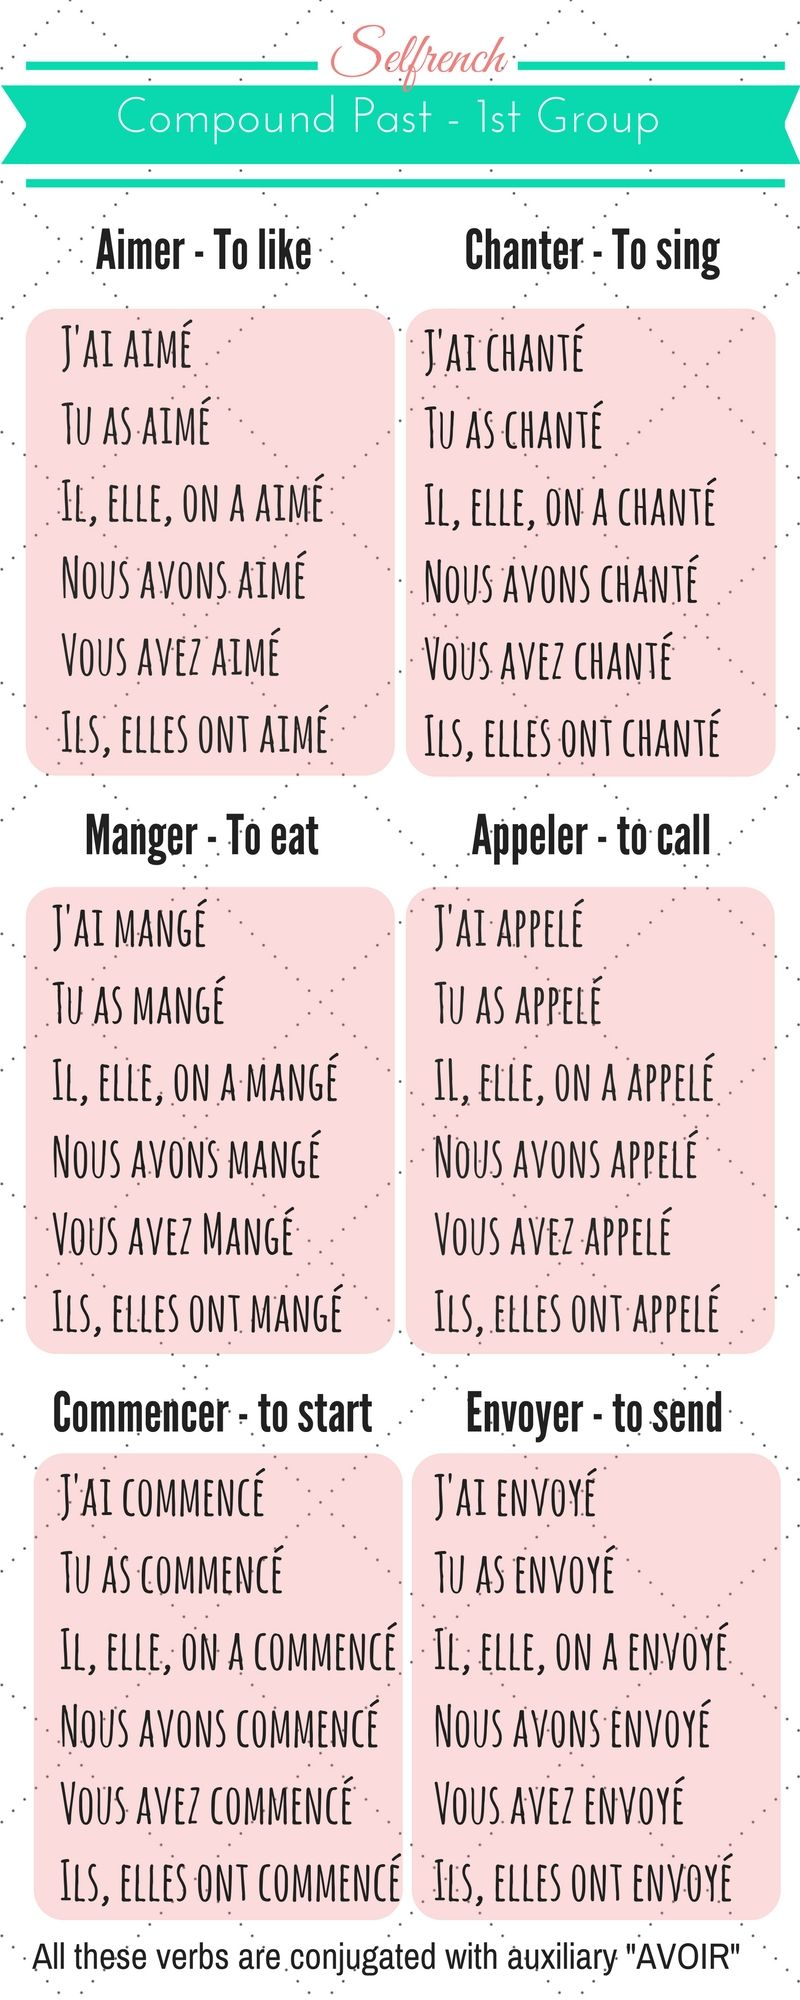 learn the french conjugation easily with this helpful infographic  learn the compound past  a